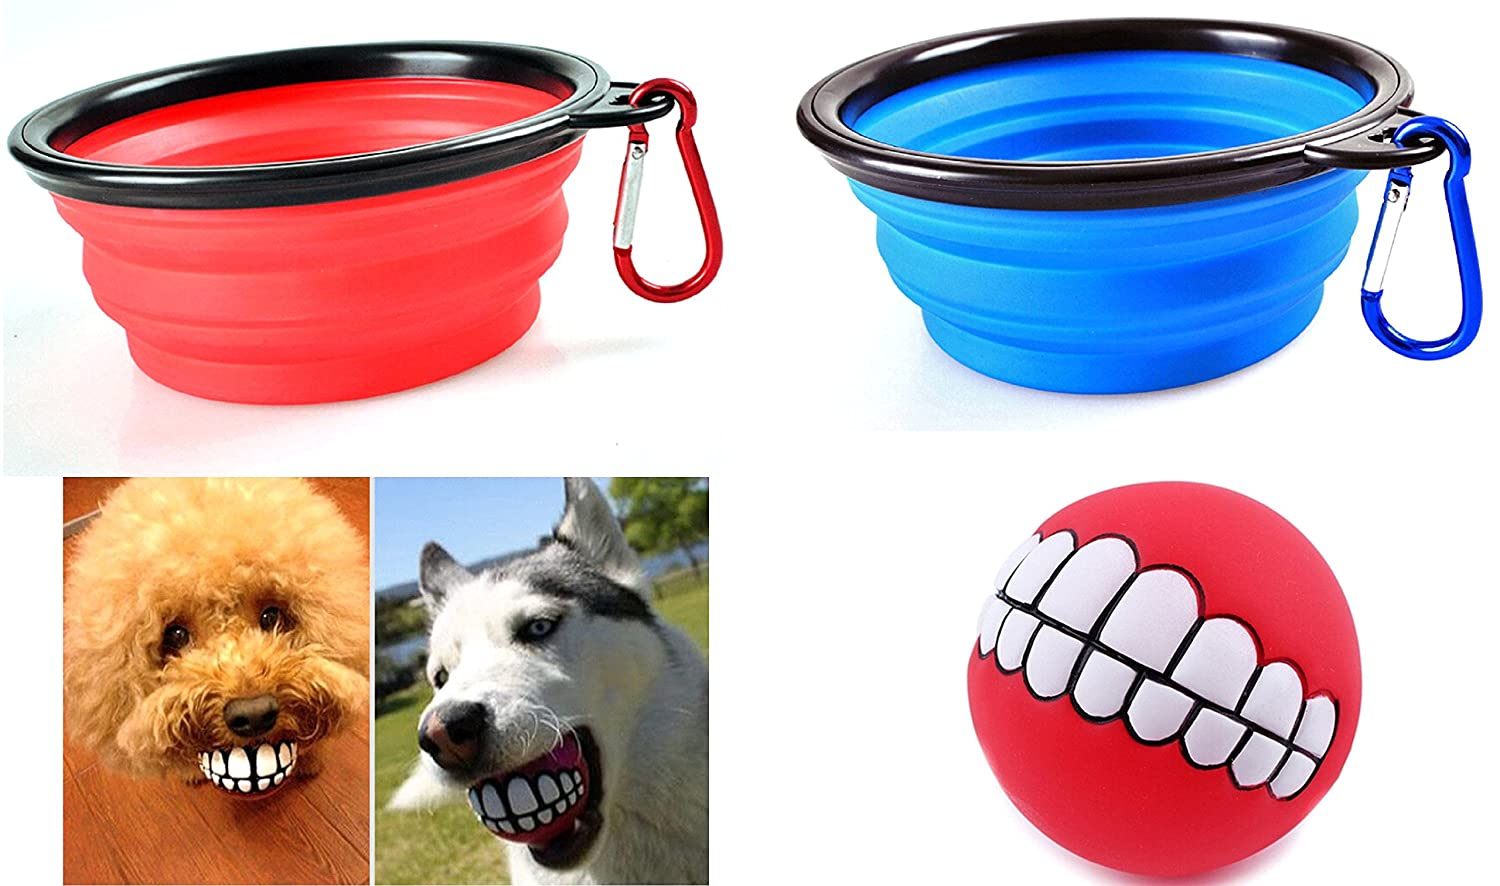 2 Collapsible Dog Bowls + 1 Funny Smiling Teeth Ball. Bowls Are Food Grade Silicone BPA Free FDA Approved, Foldable Expandable Dish for Pet Dog Food Water Feeding Portable Travel Bowls Free Carabiners